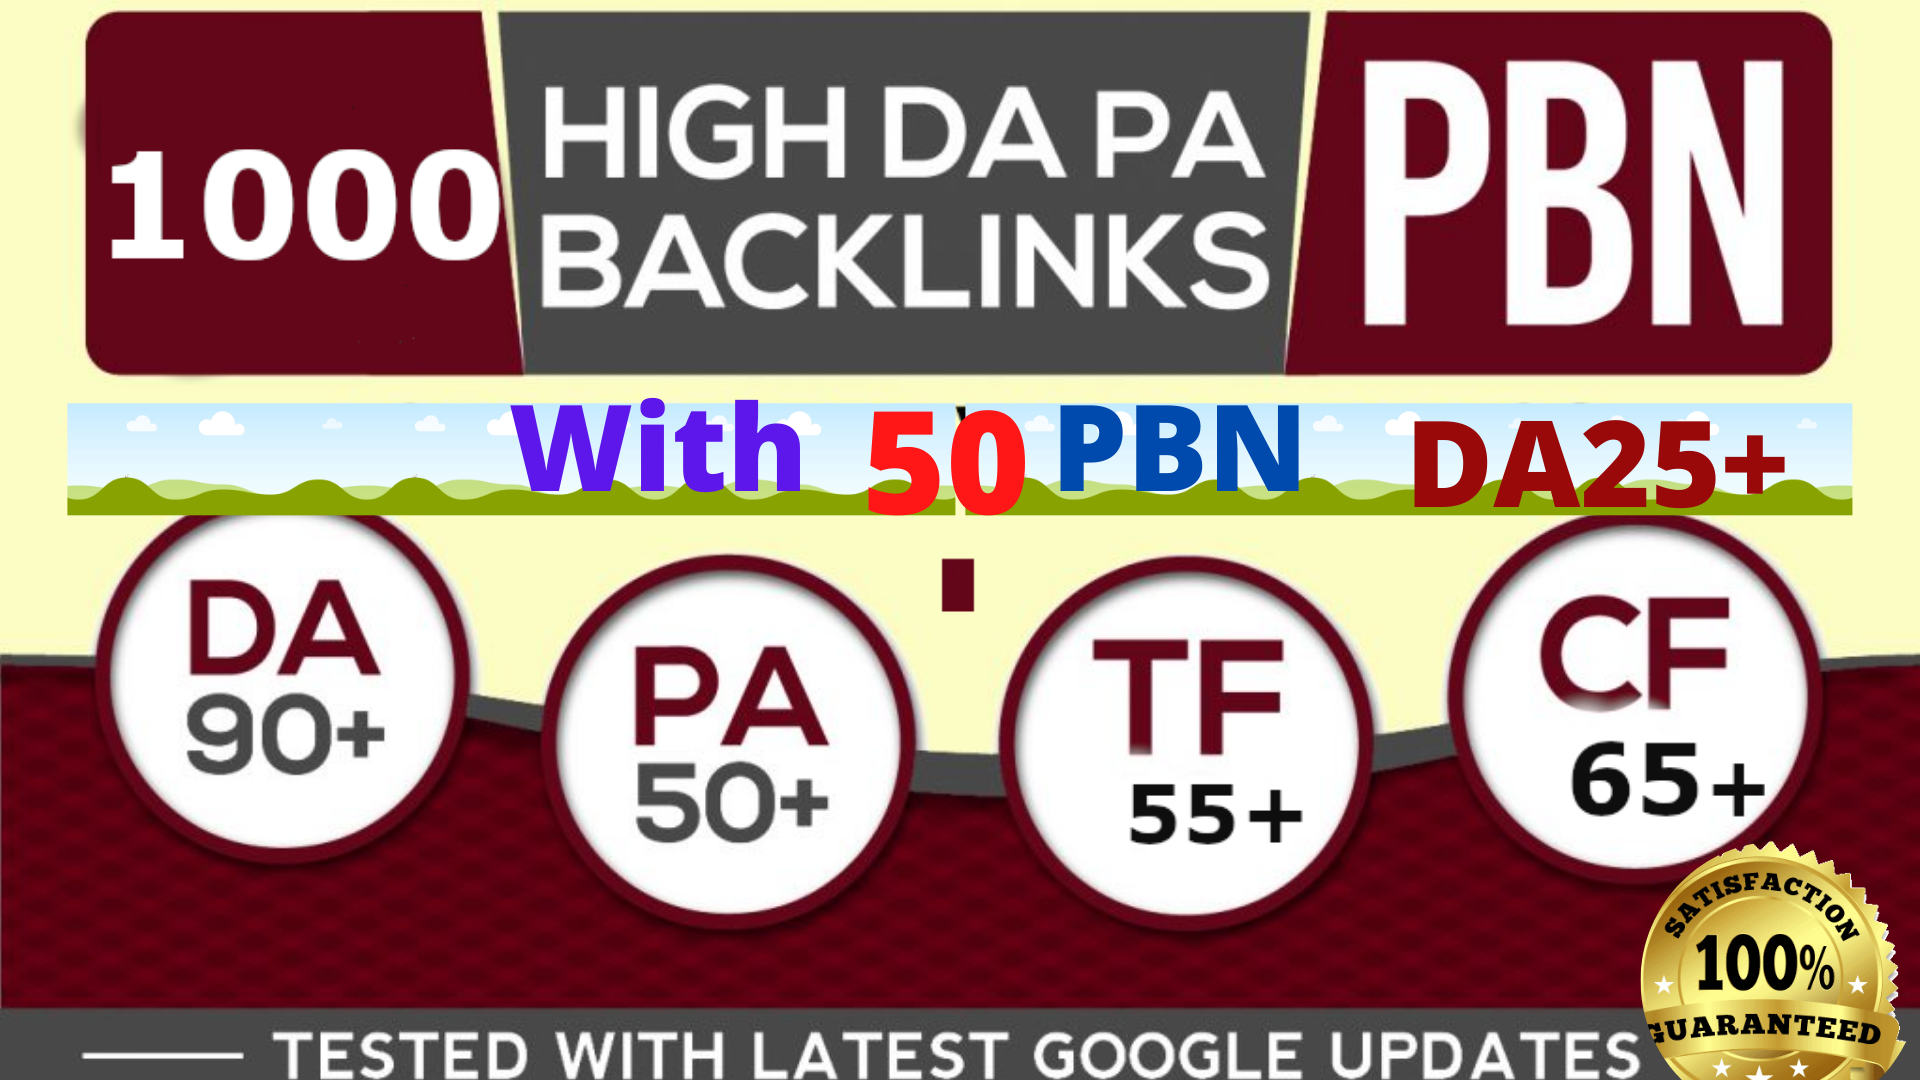 Buy Two get 1 FREE HIGH DA90+1000+strong mixup links with 50 PBN DA25+ exclusive Back-links